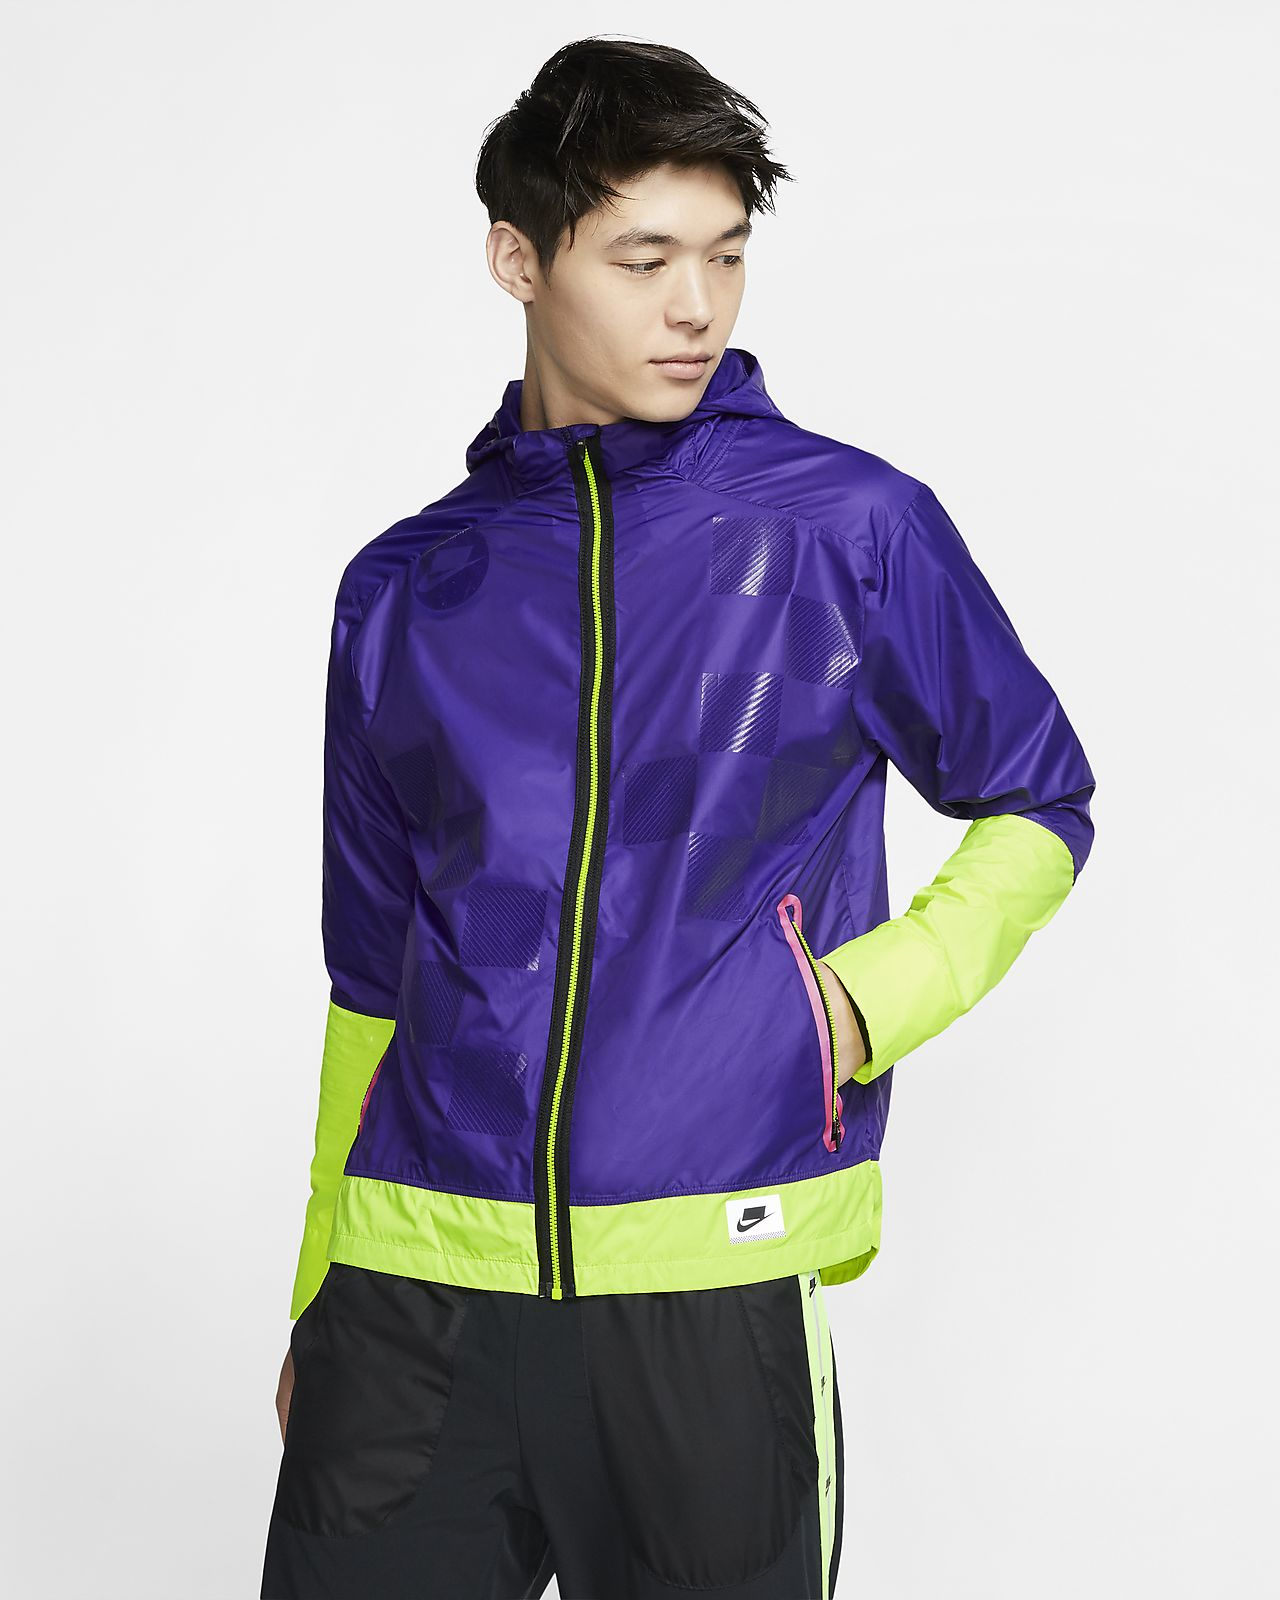 online here outlet new product Veste de running Flash Nike Shield pour Homme